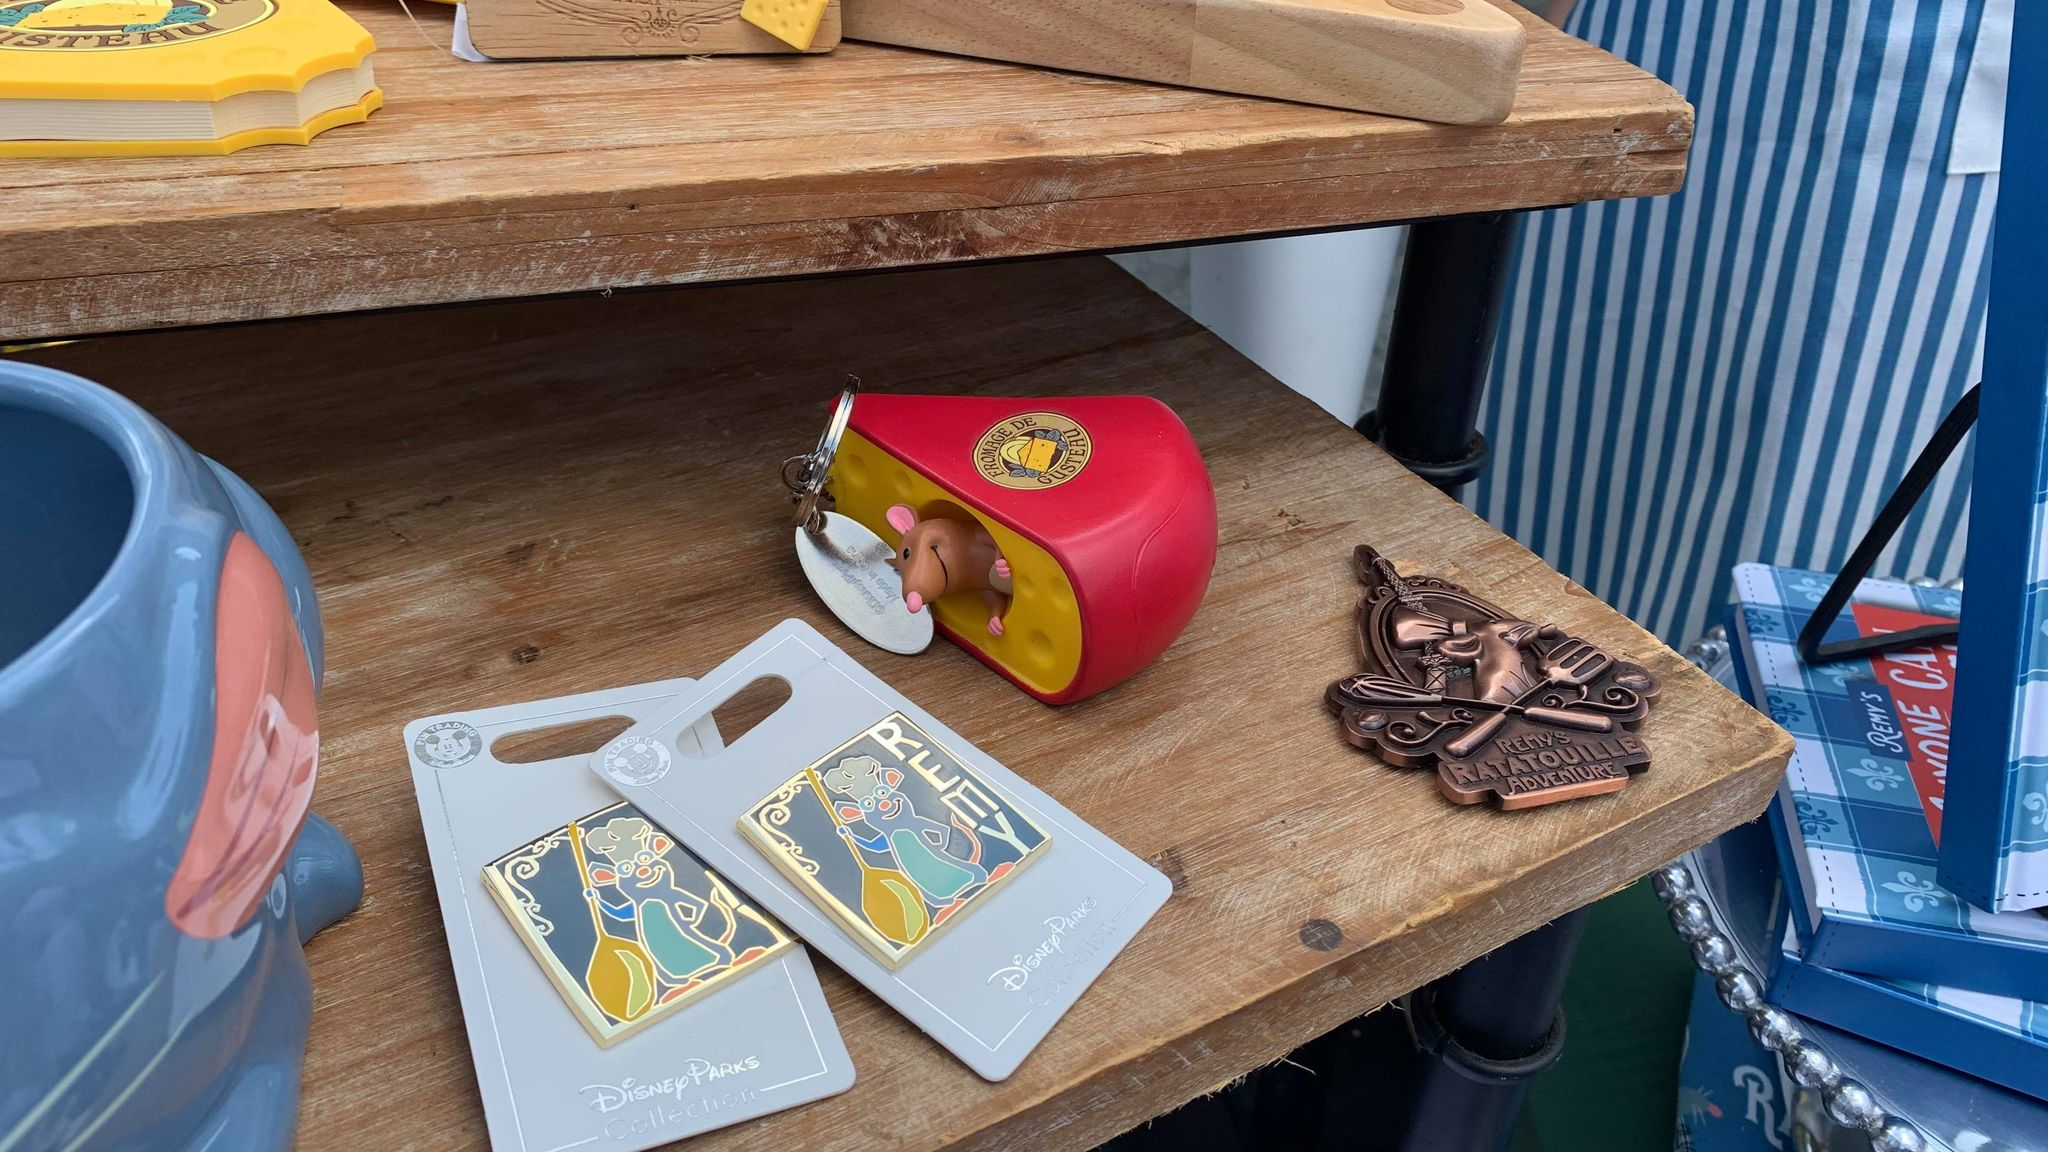 First look at the new Remy's Ratatouille Adventure line of merch coming soon! 9